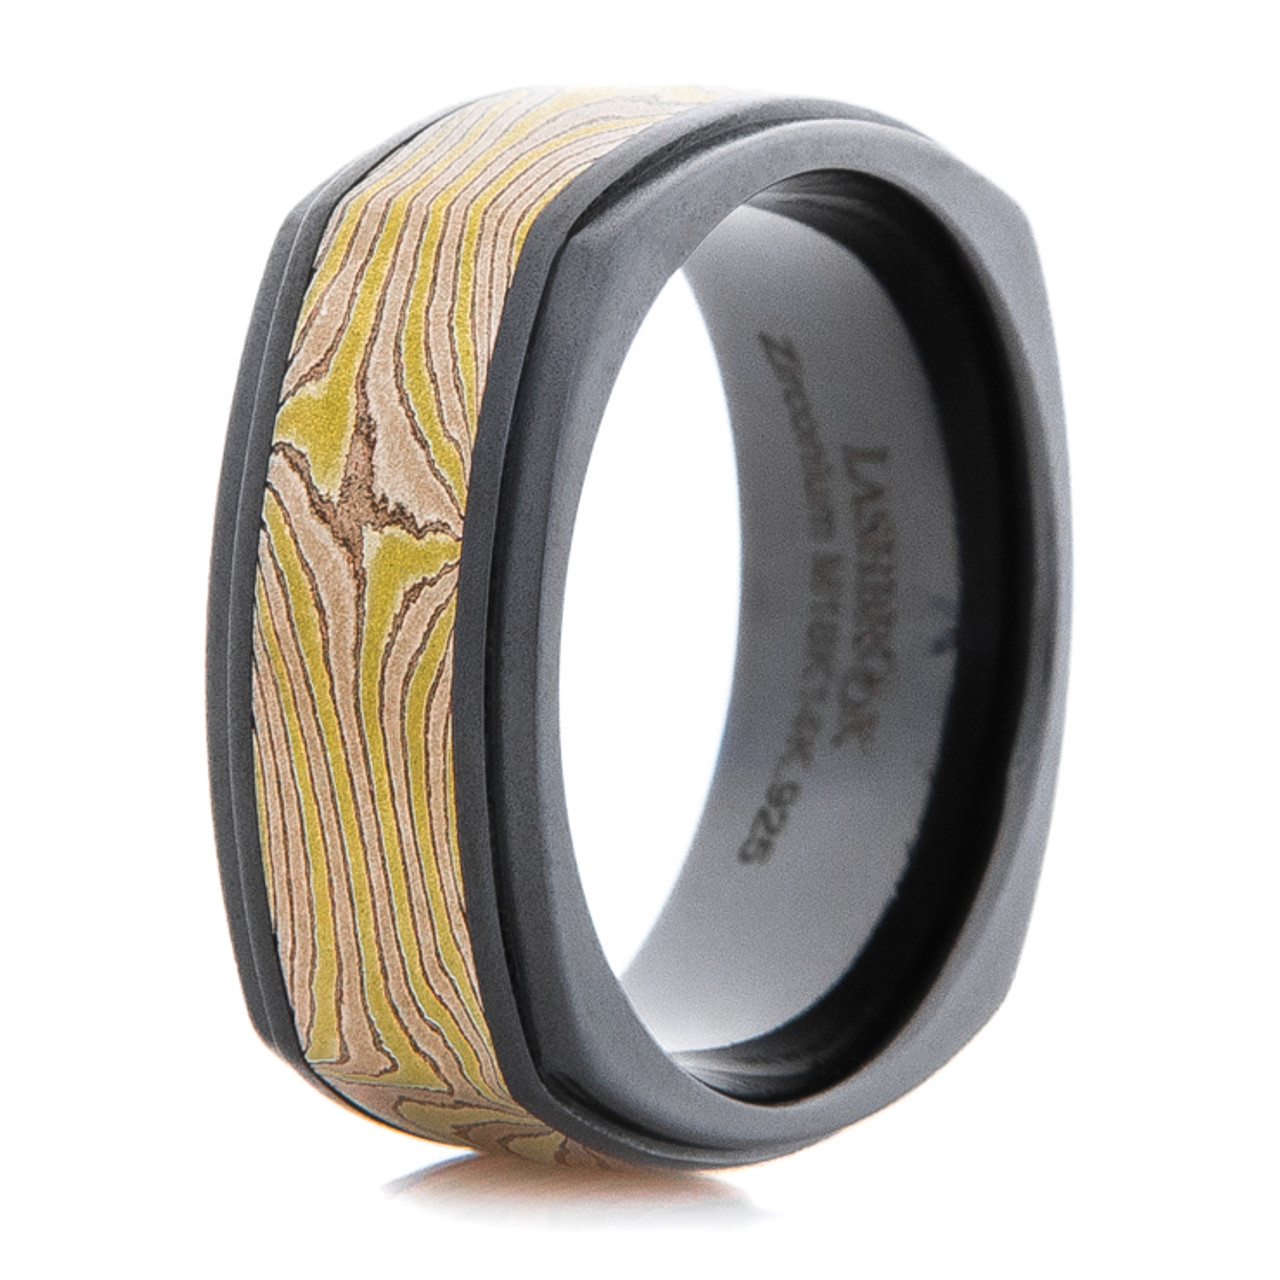 and rings titanium sleeve anodized mokume ring with custom palladium made damascus steel products gane